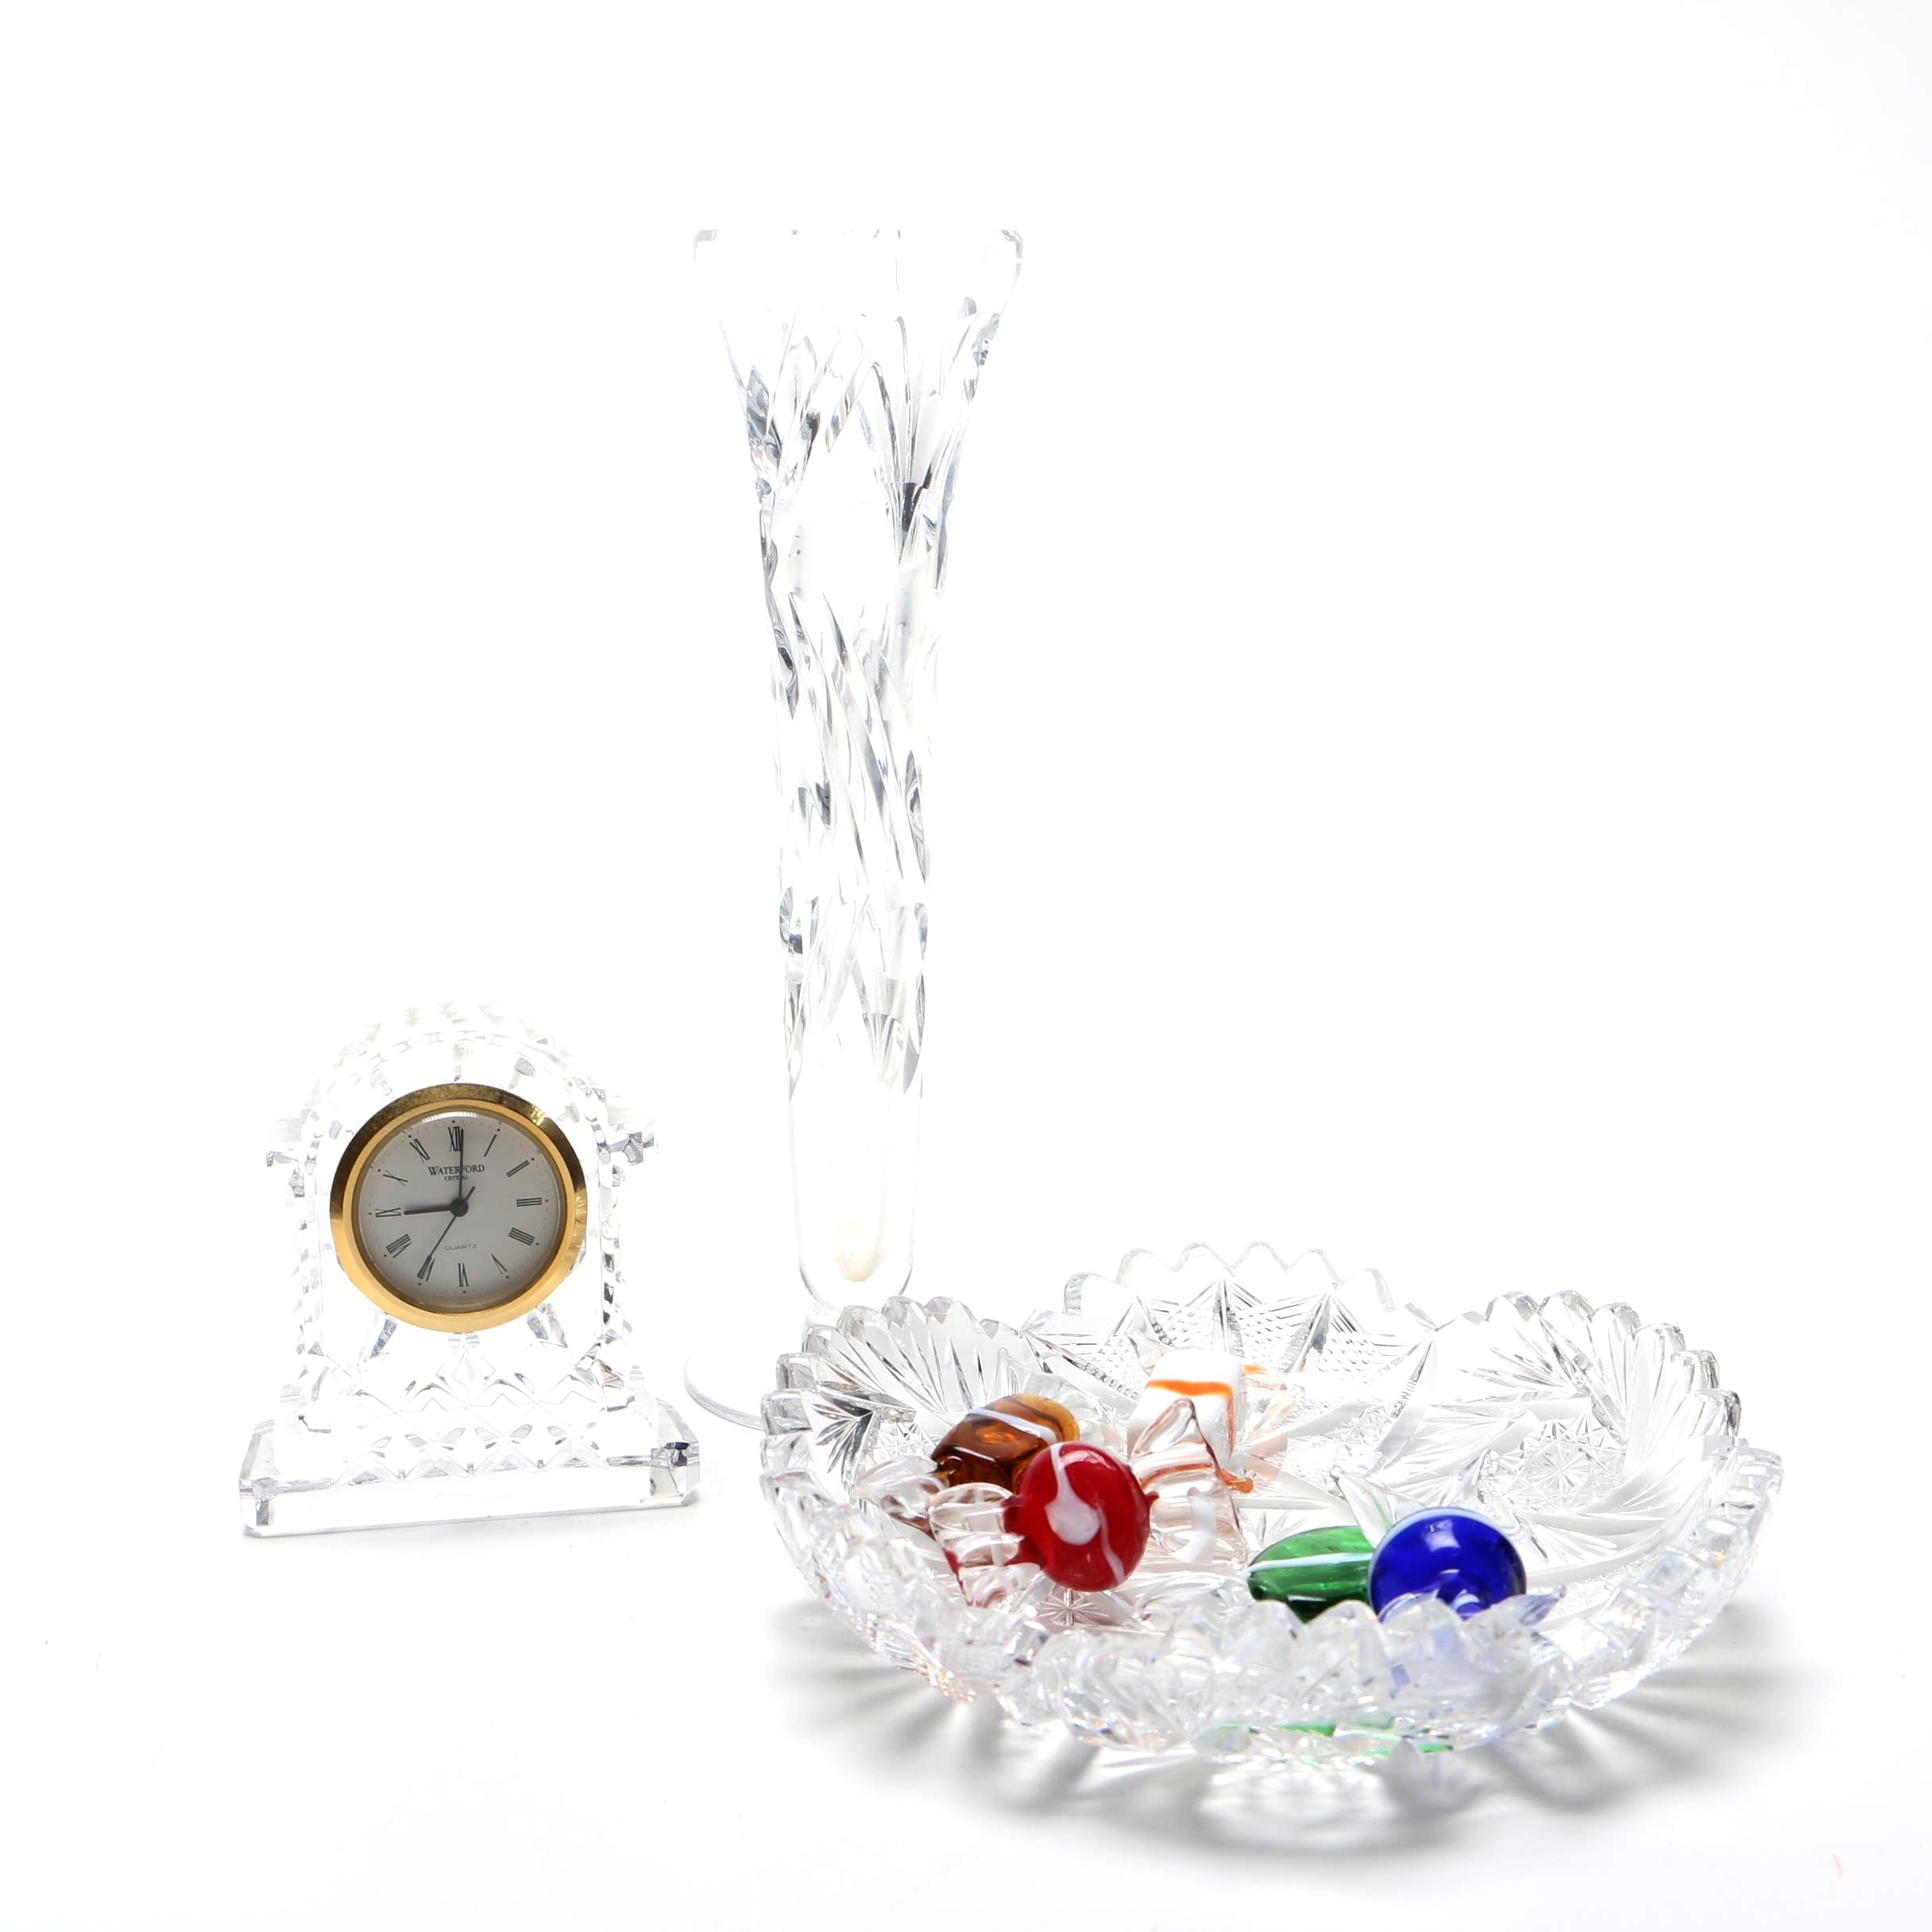 Waterford Clock, Crystal Candy Dish With Candy and Vase